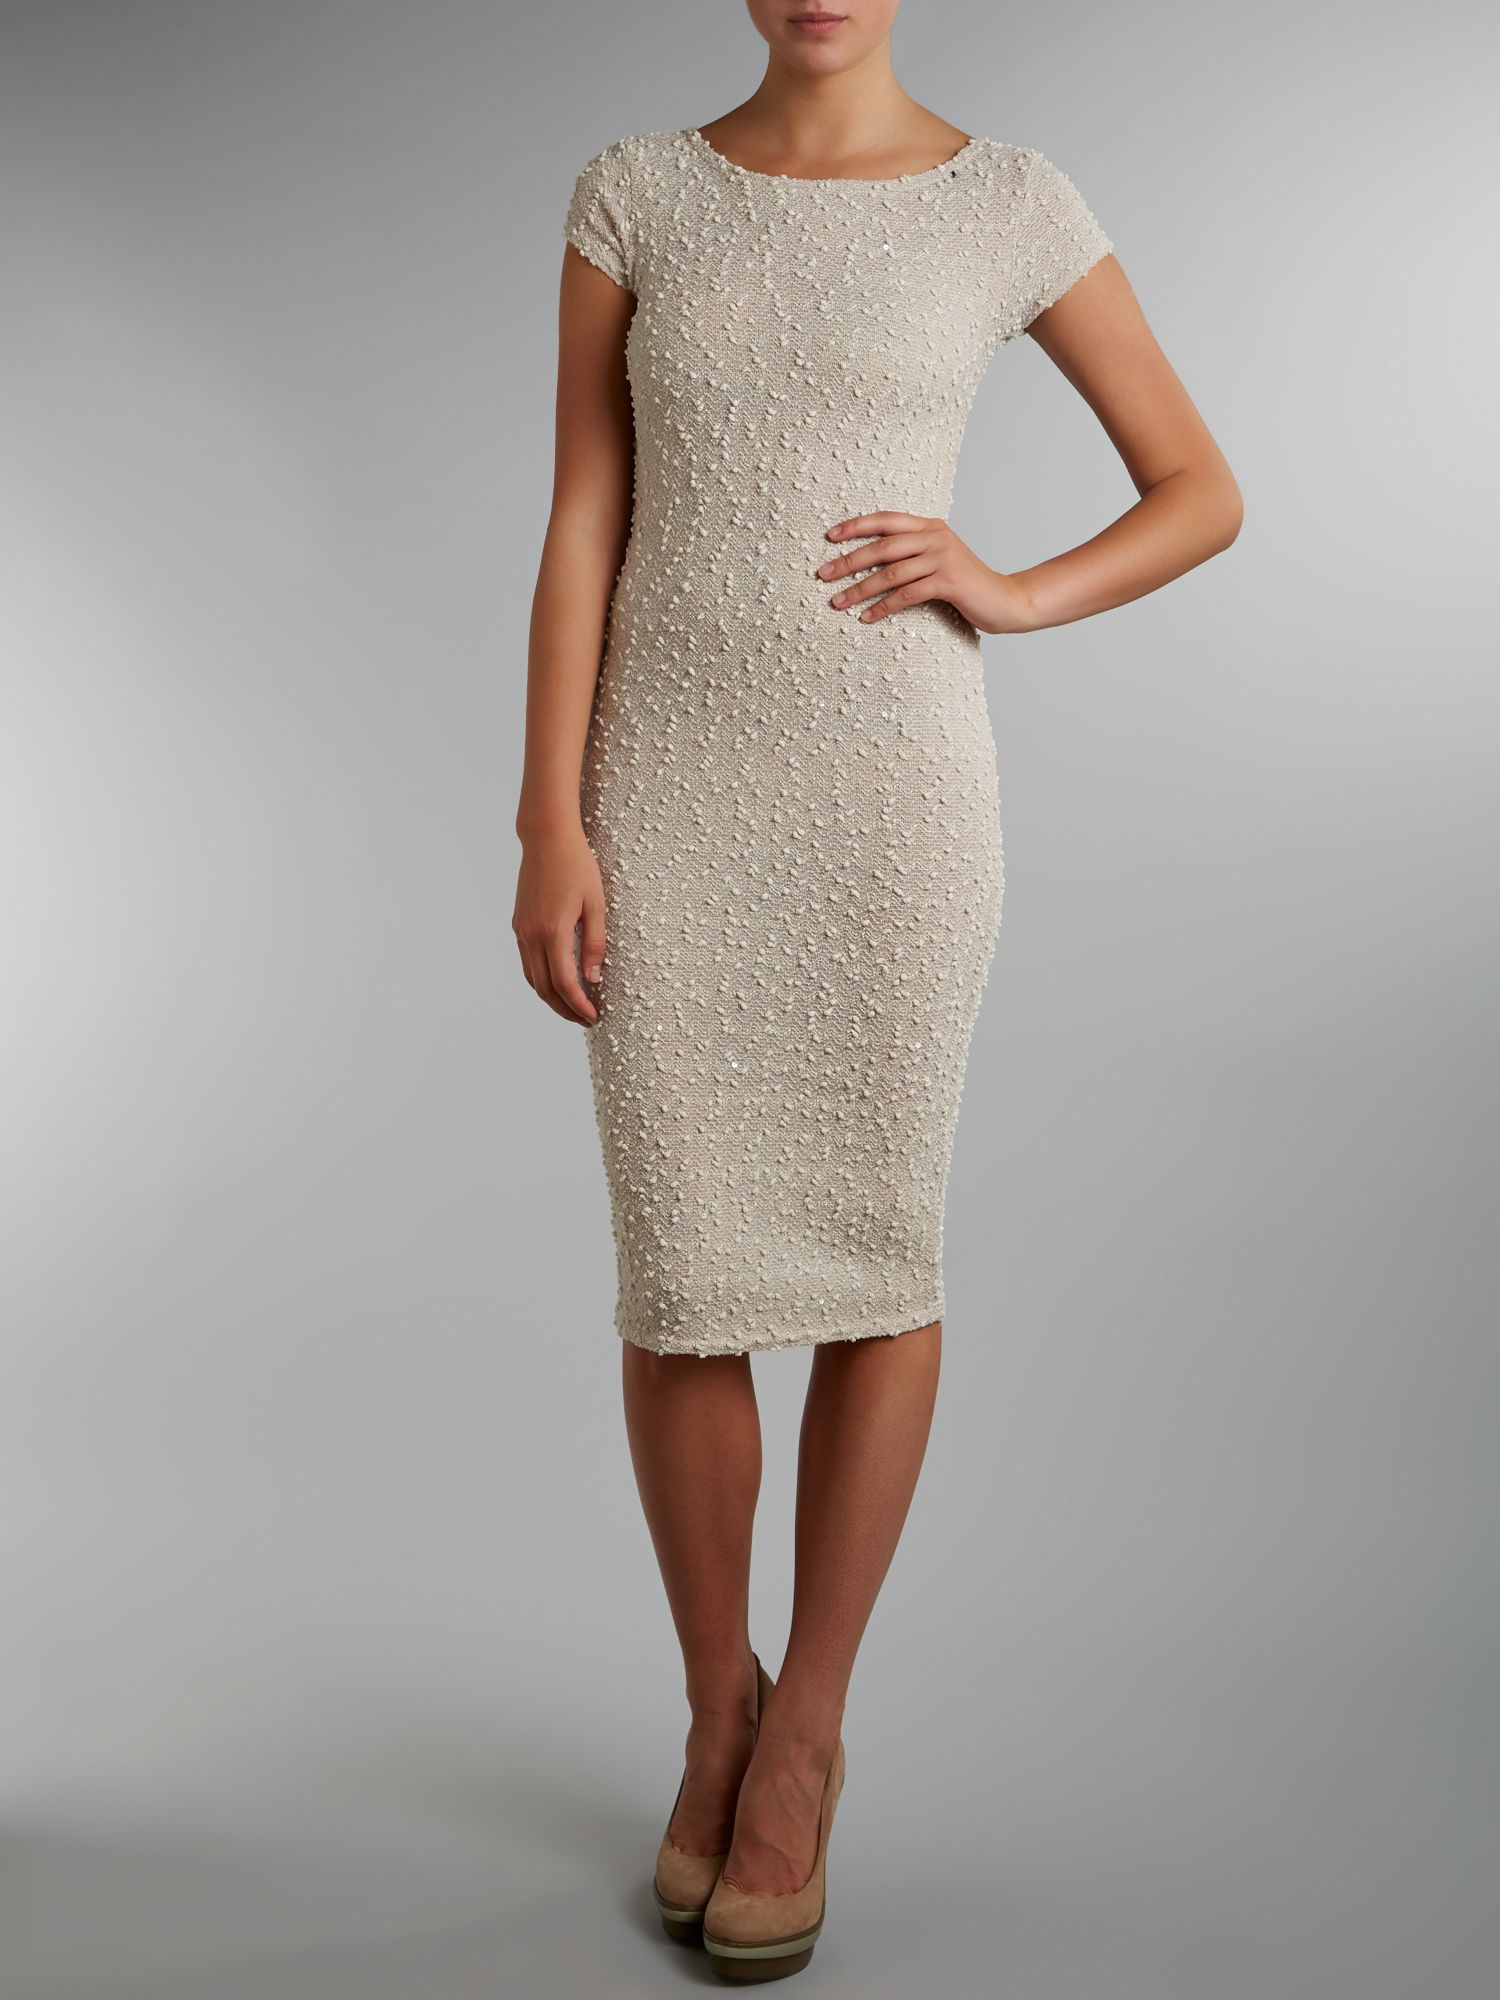 Boucle sequin midi dress